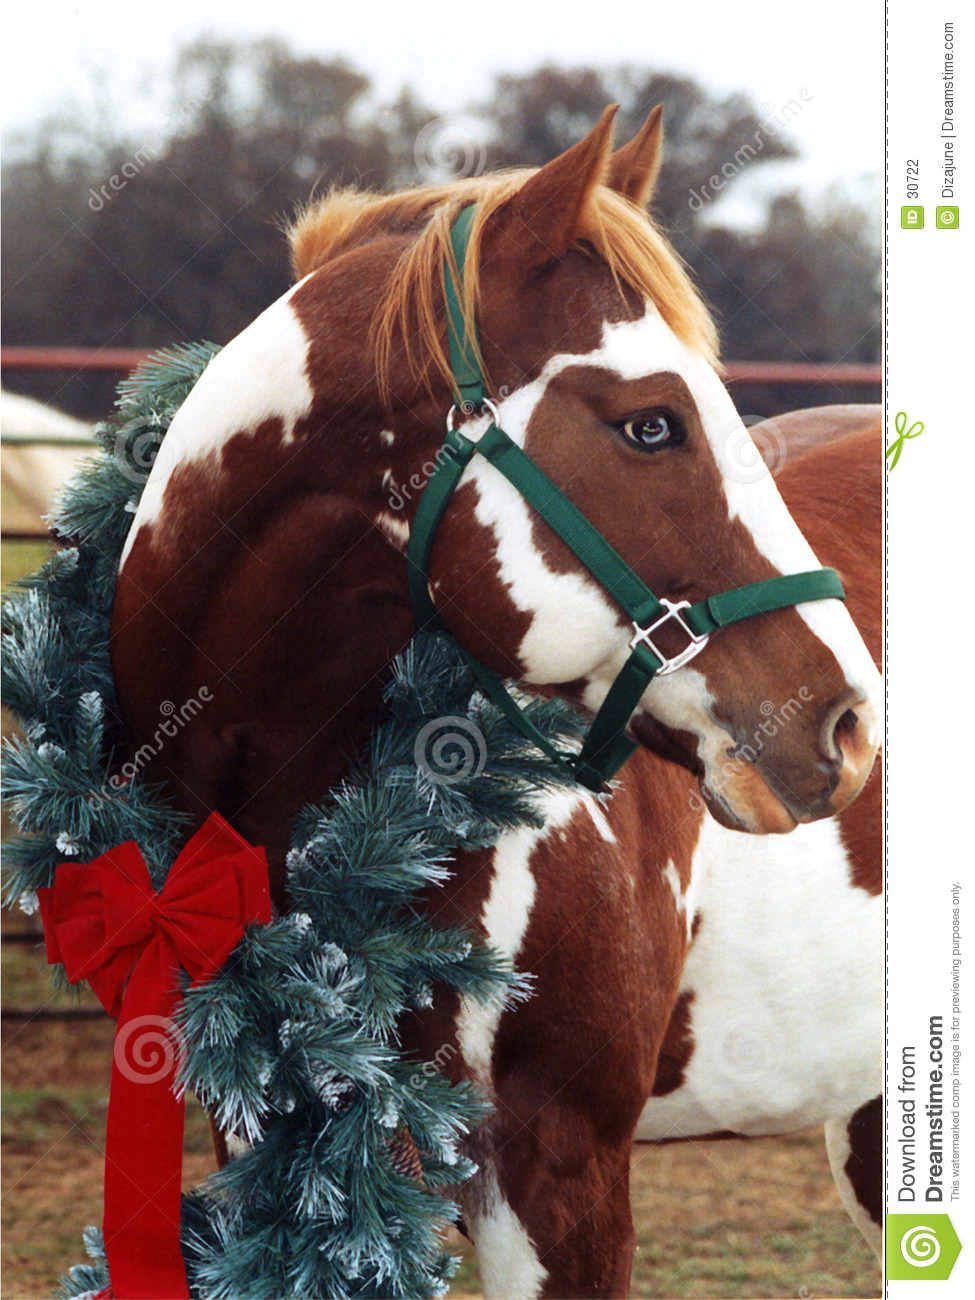 Christmas Horse Pictures.Christmas Horse Stock Photo Image Of Intent Texas Animal